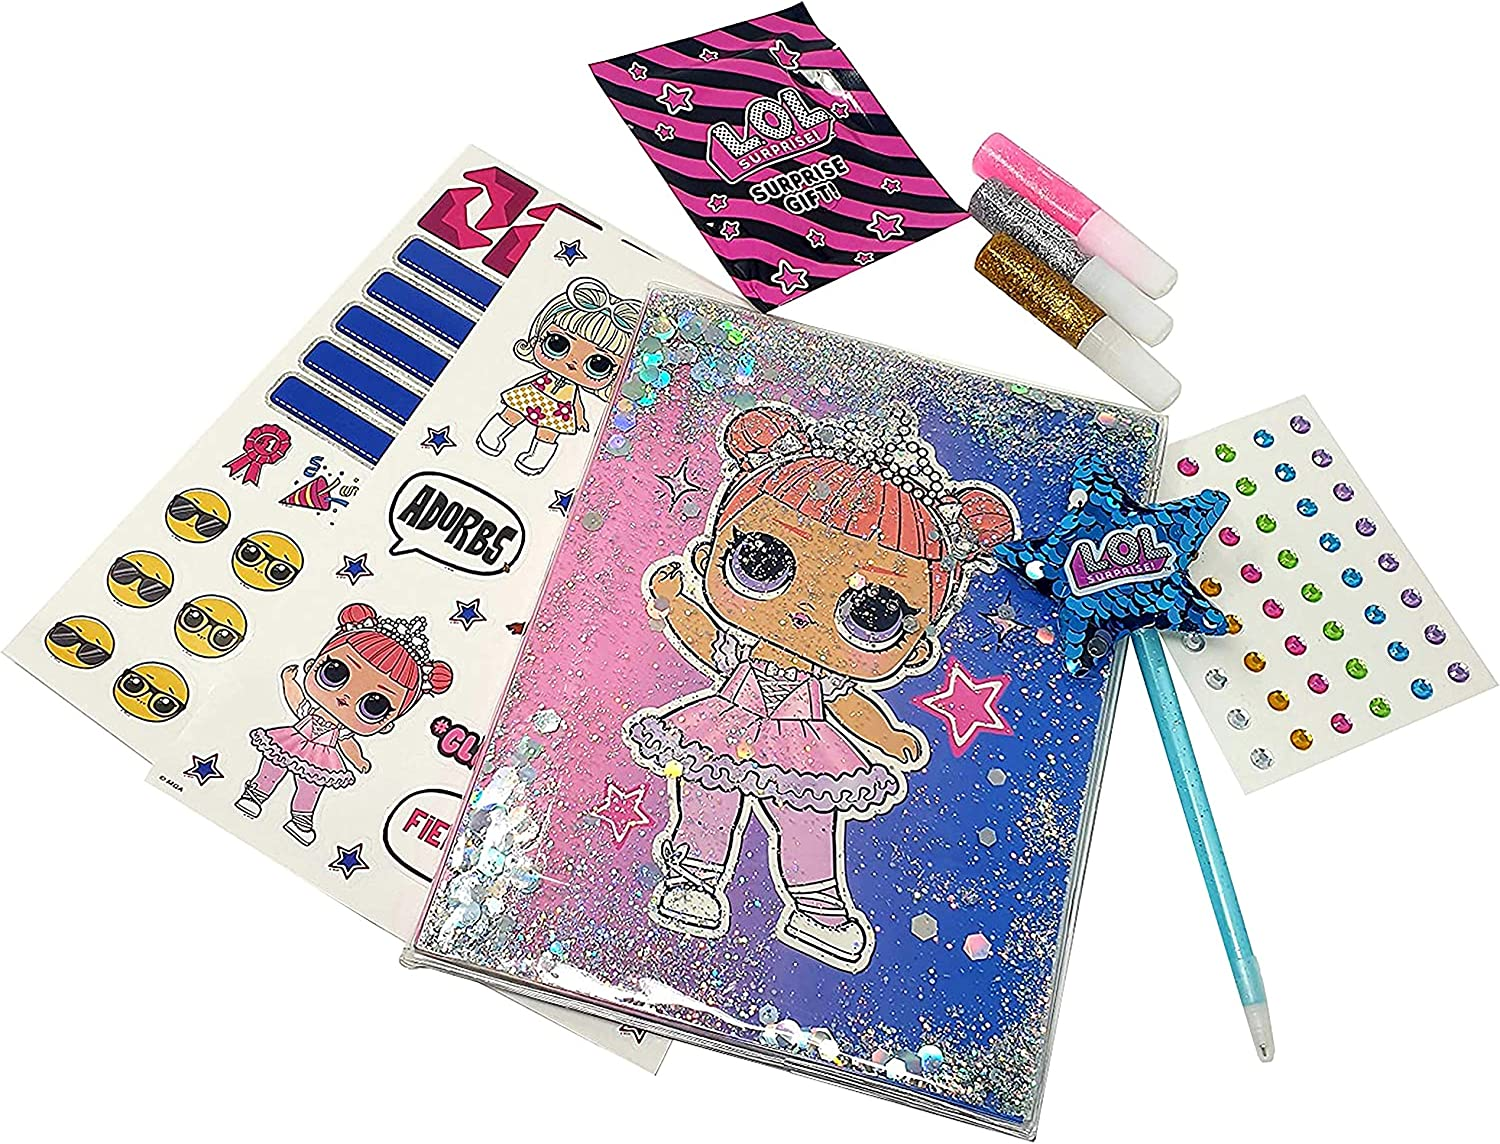 48 Page with Accessories Sequin or 3D Notebook Create Your Own Notebook